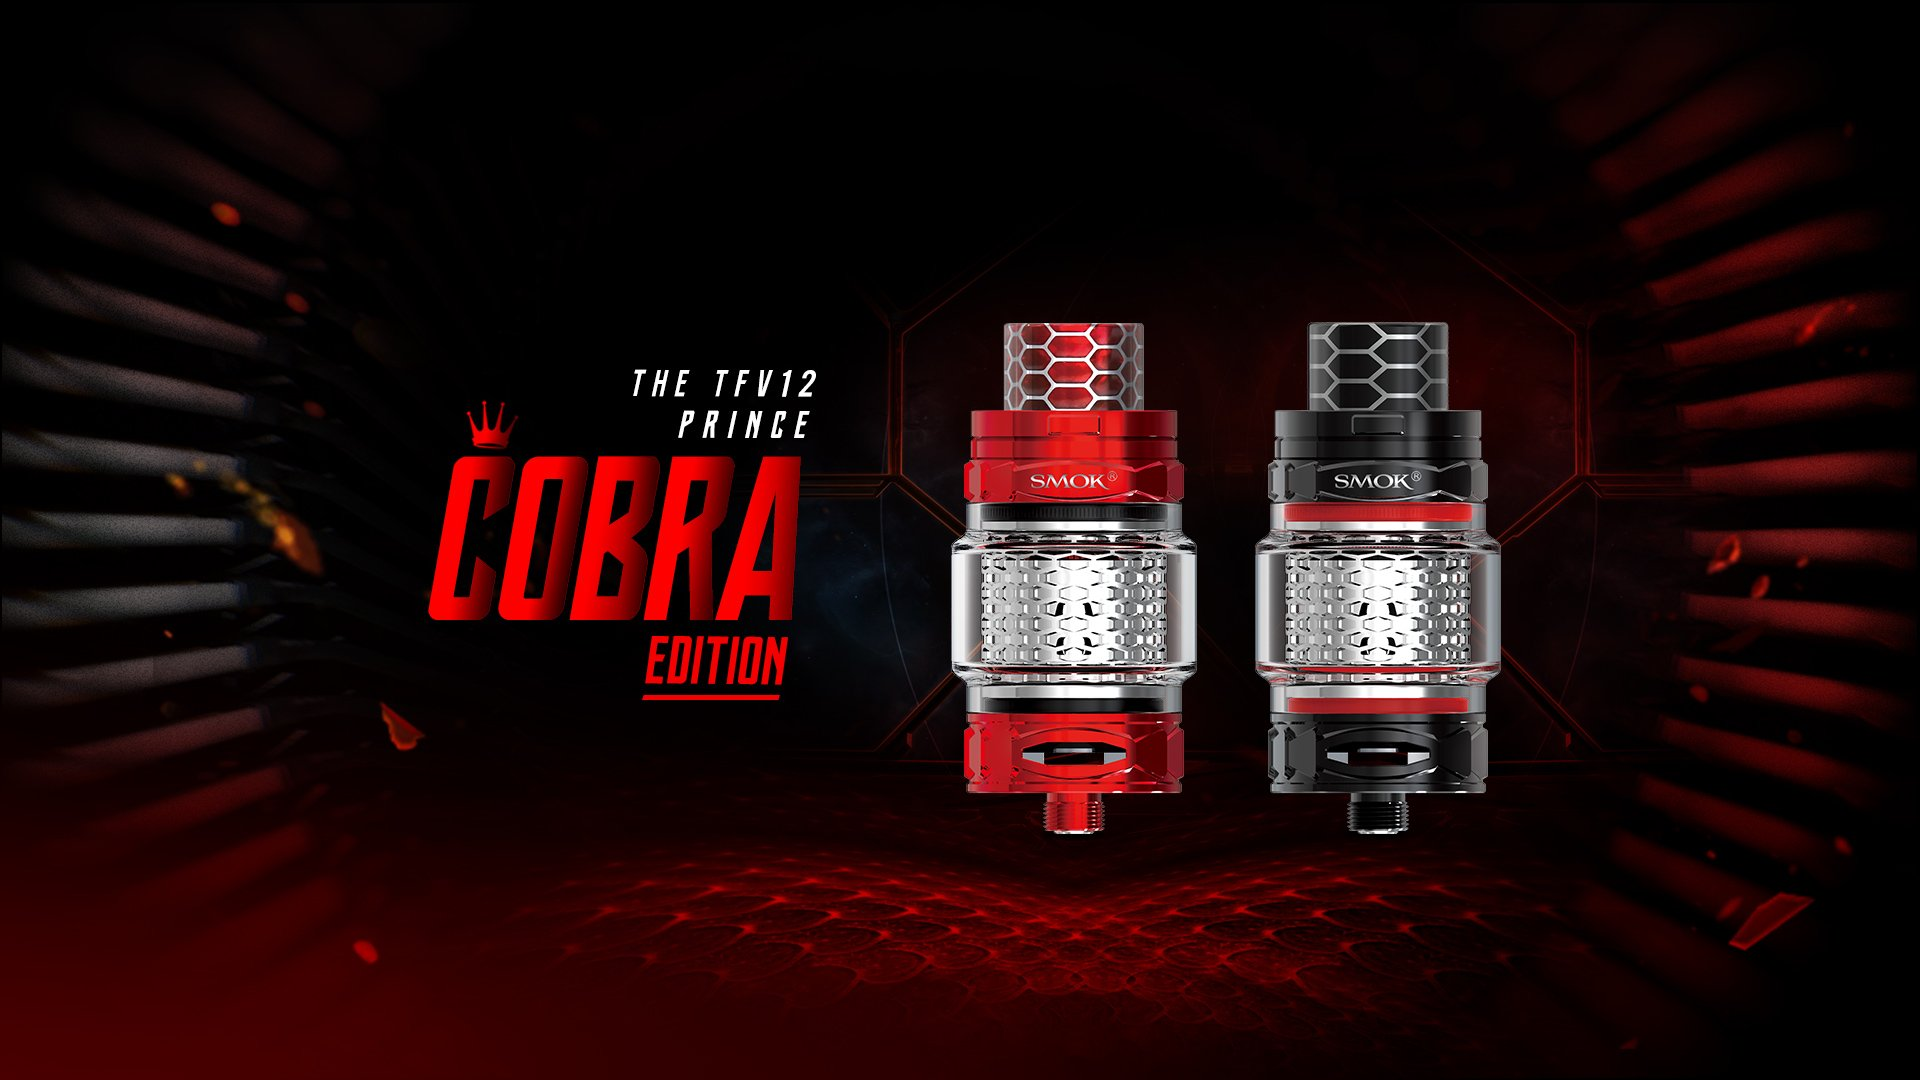 Smok TFV12 Prince Cobra Edition UK Promo